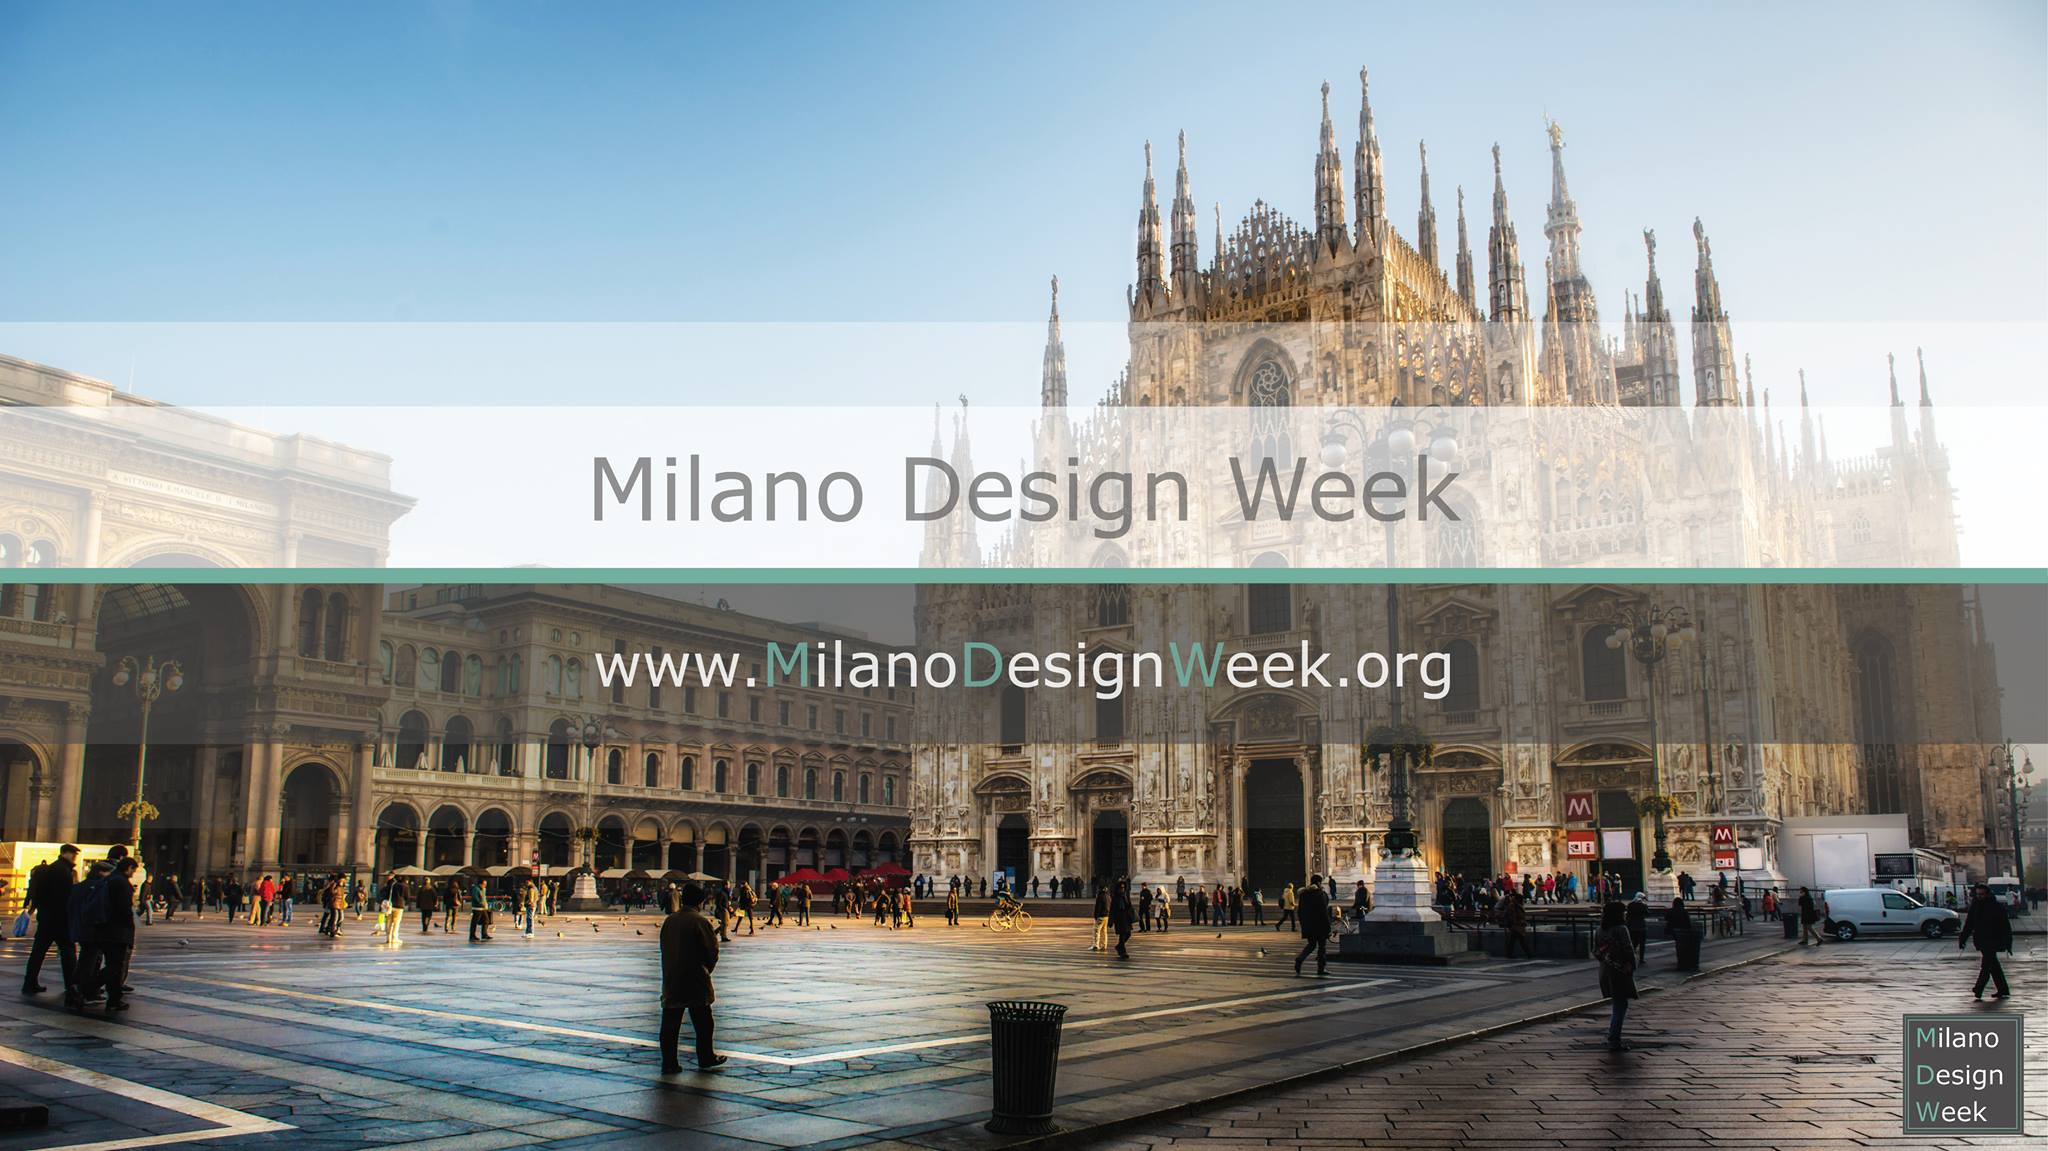 Isaloni 2016: What to see at Tortona Design Week luxury design Luxury design: pendant light solutions for a confortable ambient What to see at Tortona Design Week luxury design Luxury design: pendant light solutions for a confortable ambient What to see at Tortona Design Week